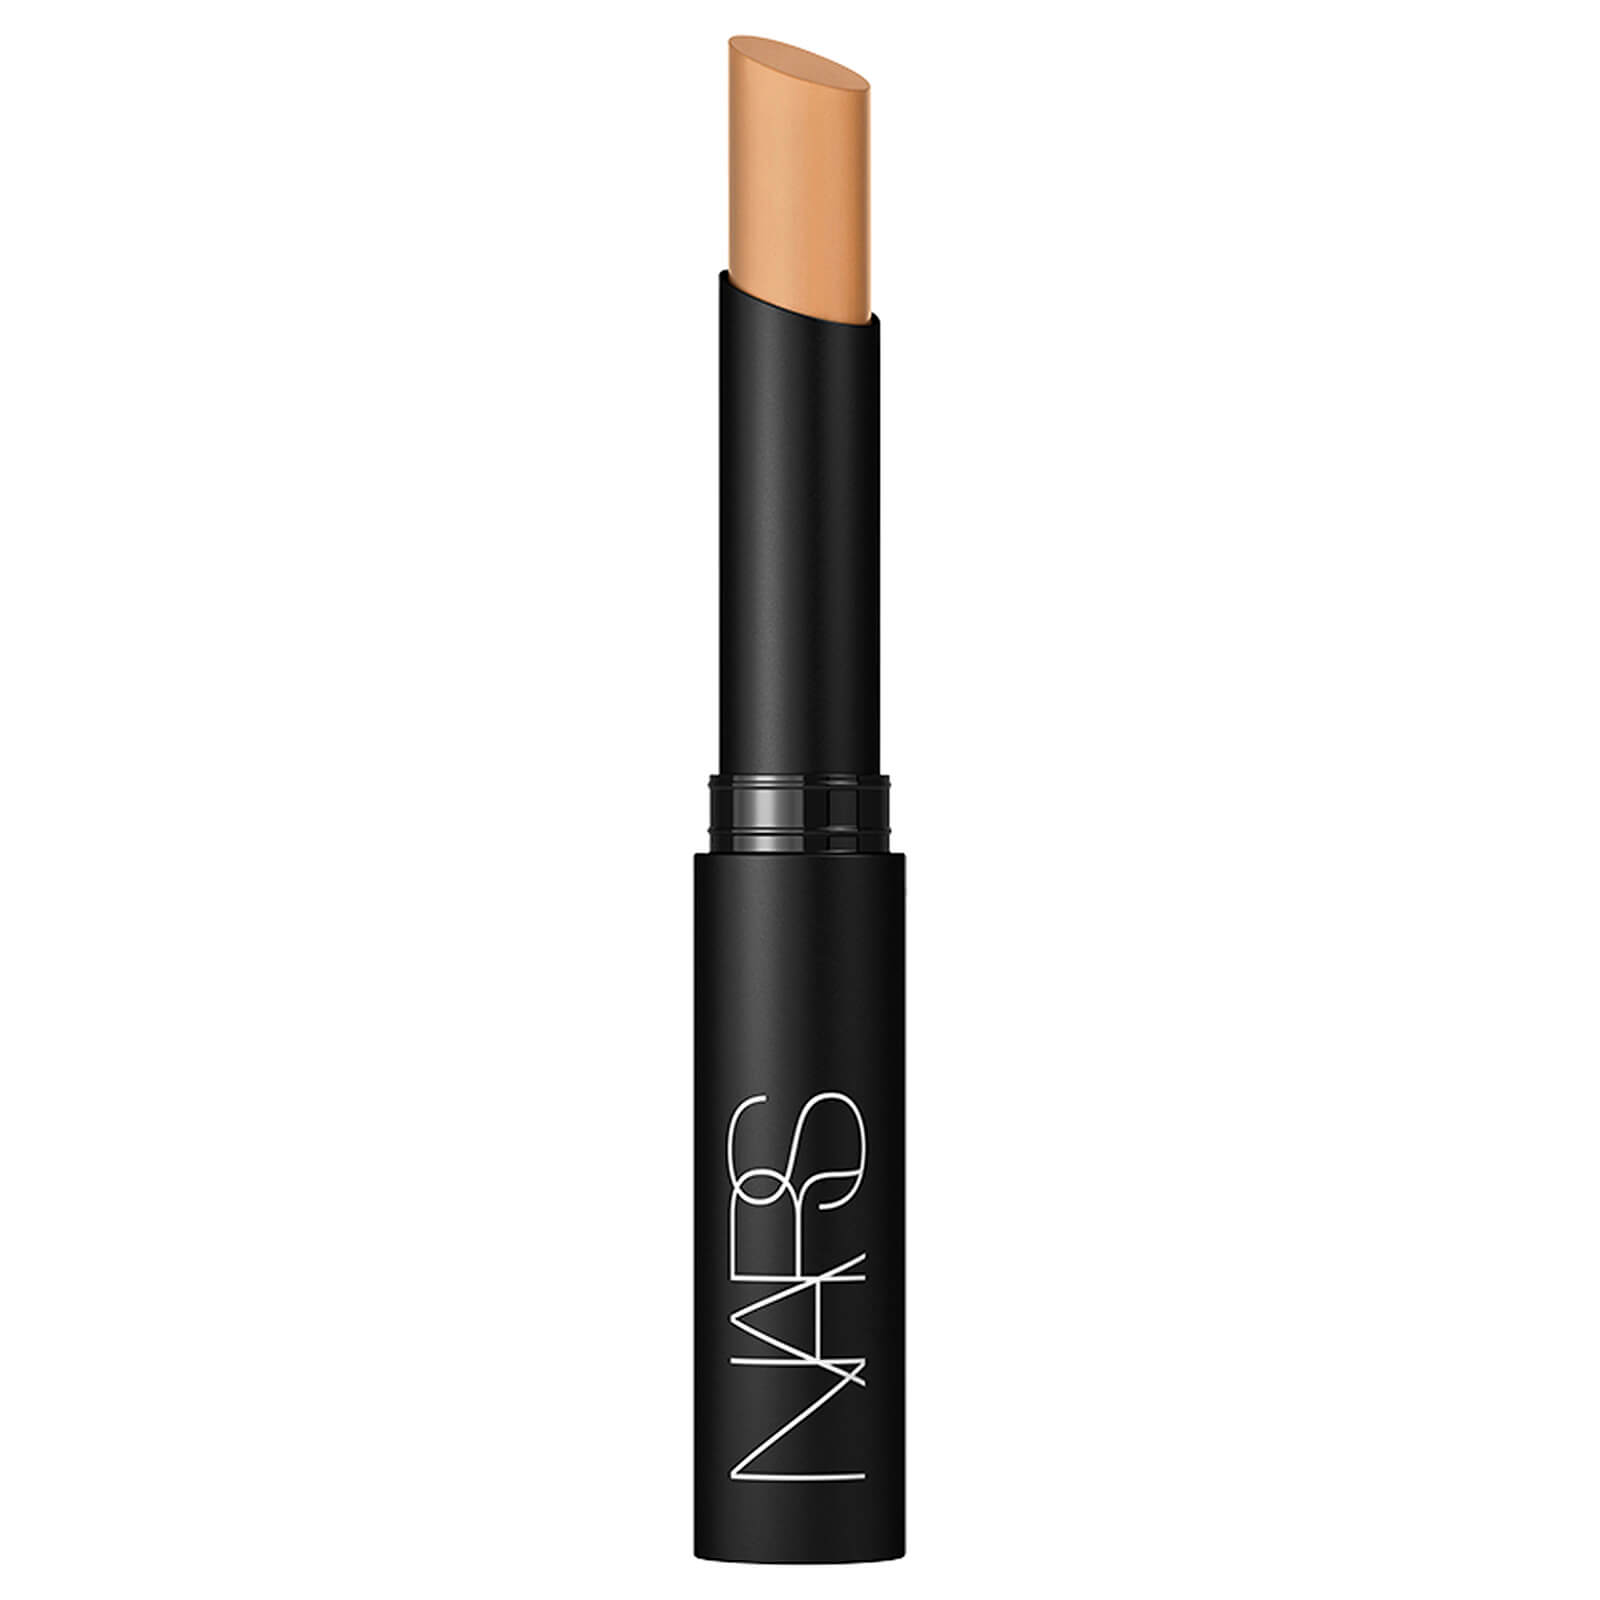 NARS Cosmetics Stick Concealer (Various Shades)